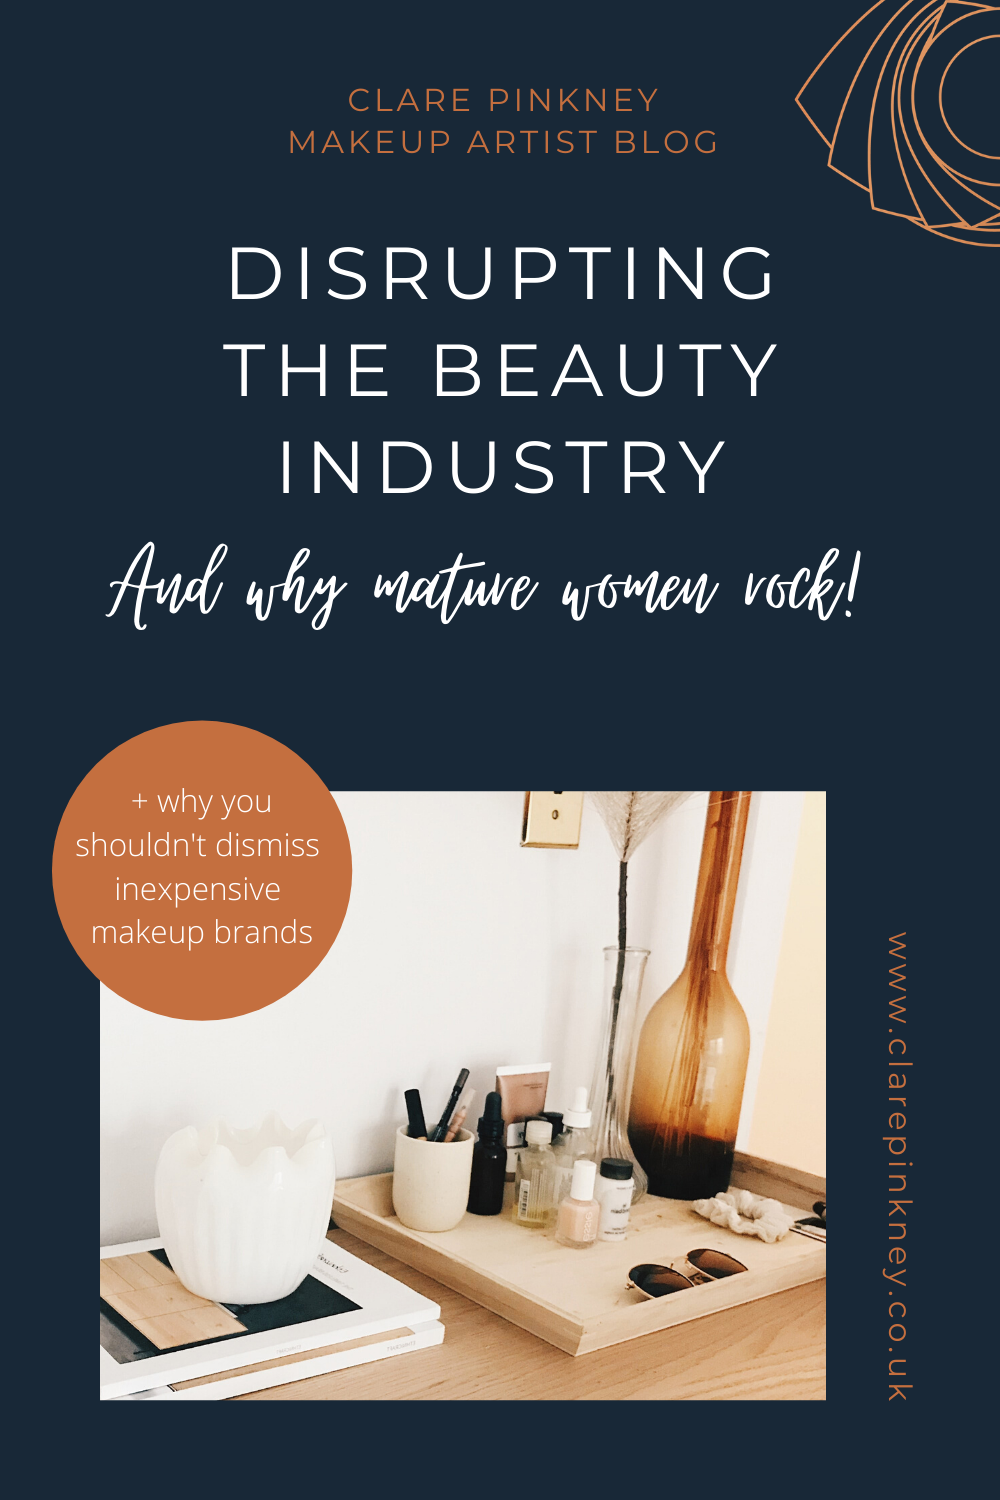 Clare Pinkney Blog disrupting the beauty industry